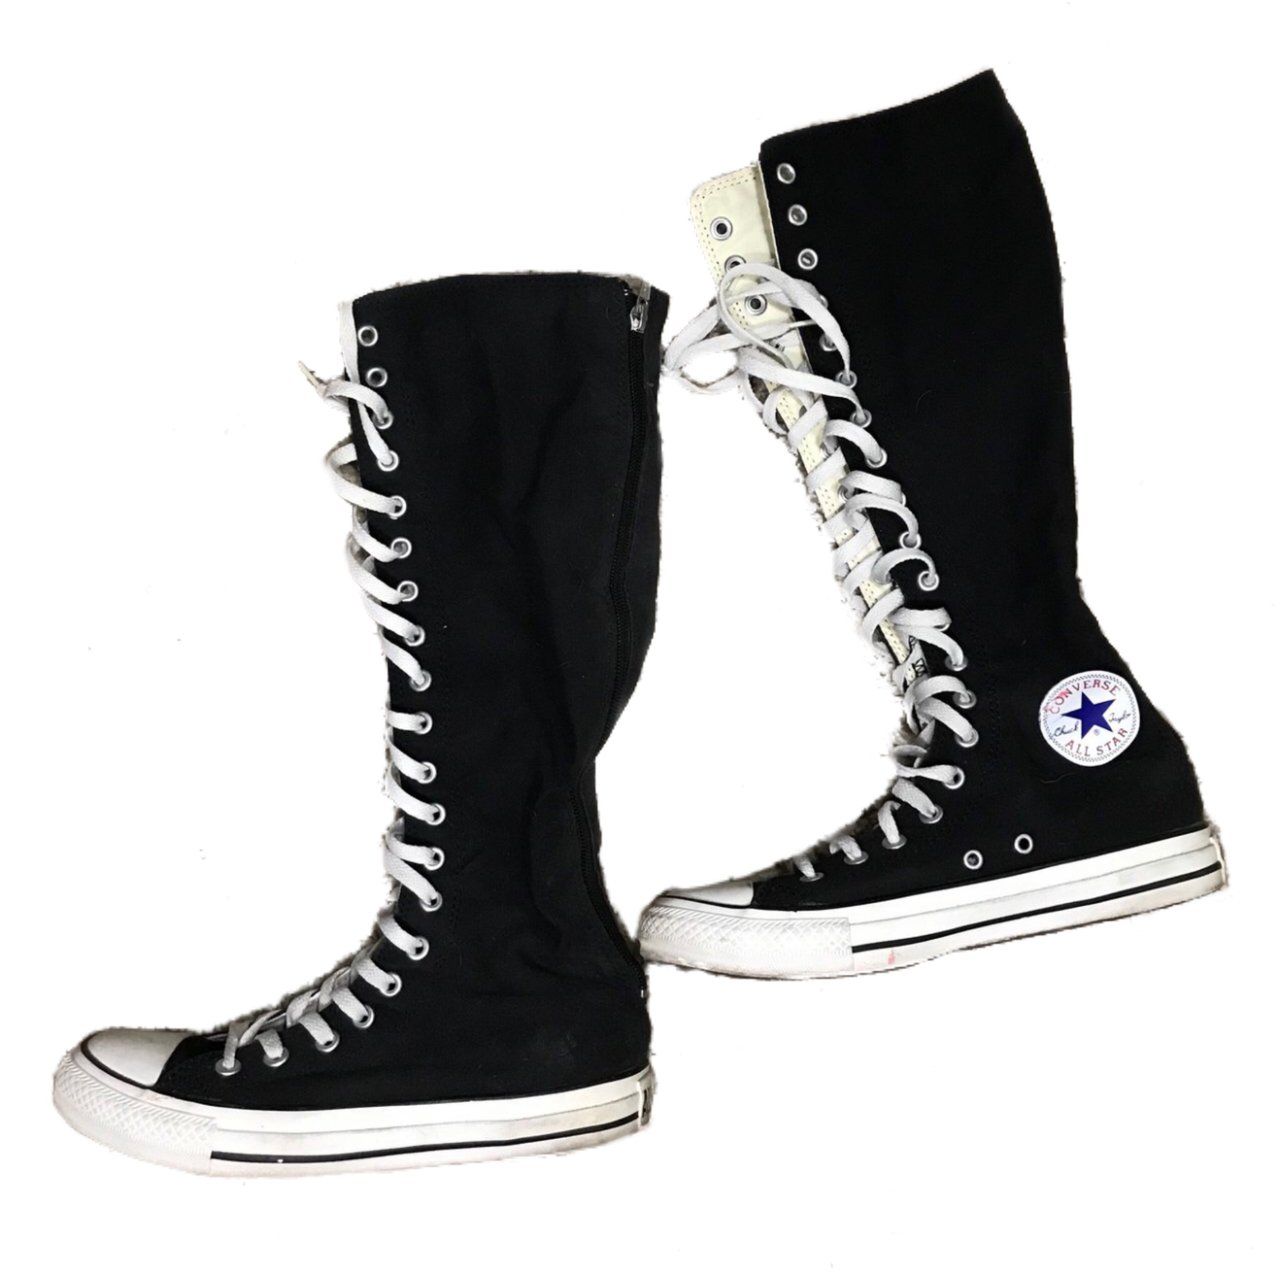 c7dc0807d2dce9 Converse black boots. They tie up like a regular sneaker but - Depop